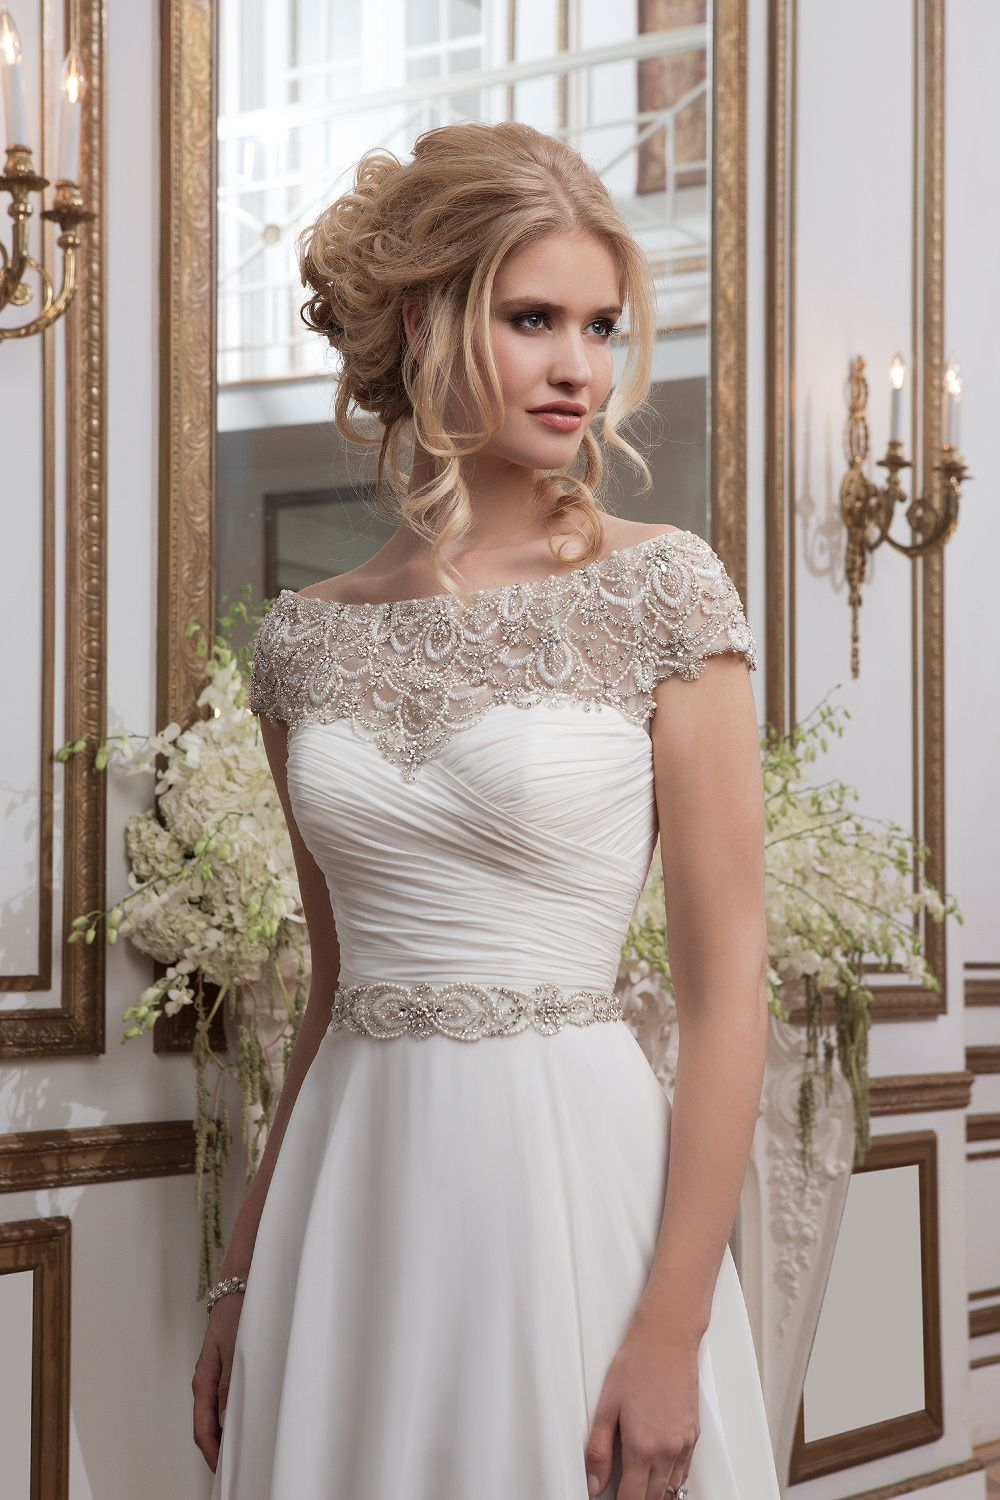 The Bridal Outlet Ireland - Bridal Wear Dublin - Bridal Shop in ...